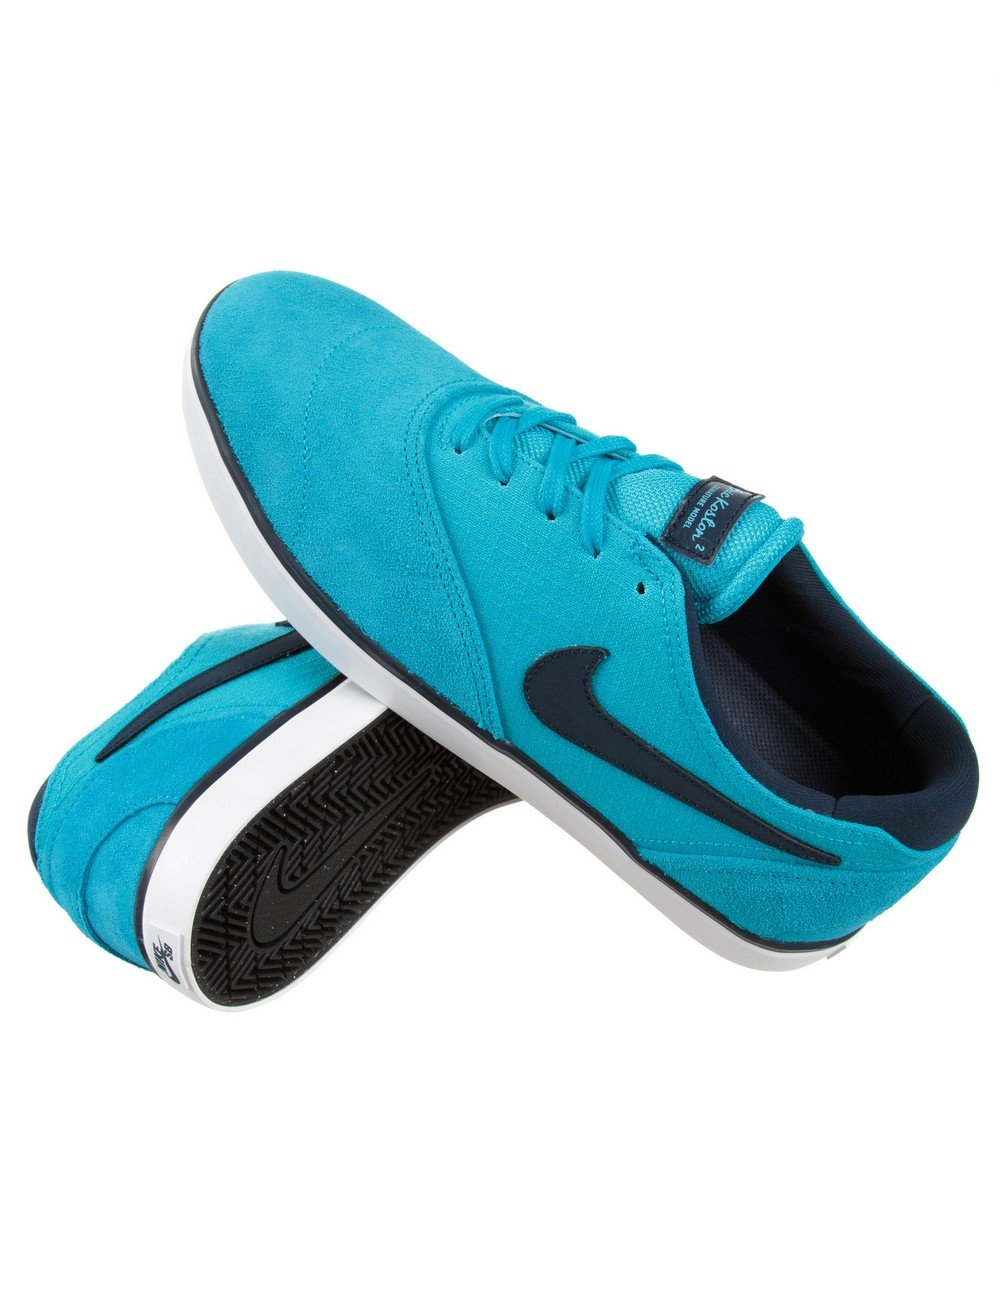 Nike SB Eric Koston 2 Shoes - Blue Lagoon - Trainers from ...